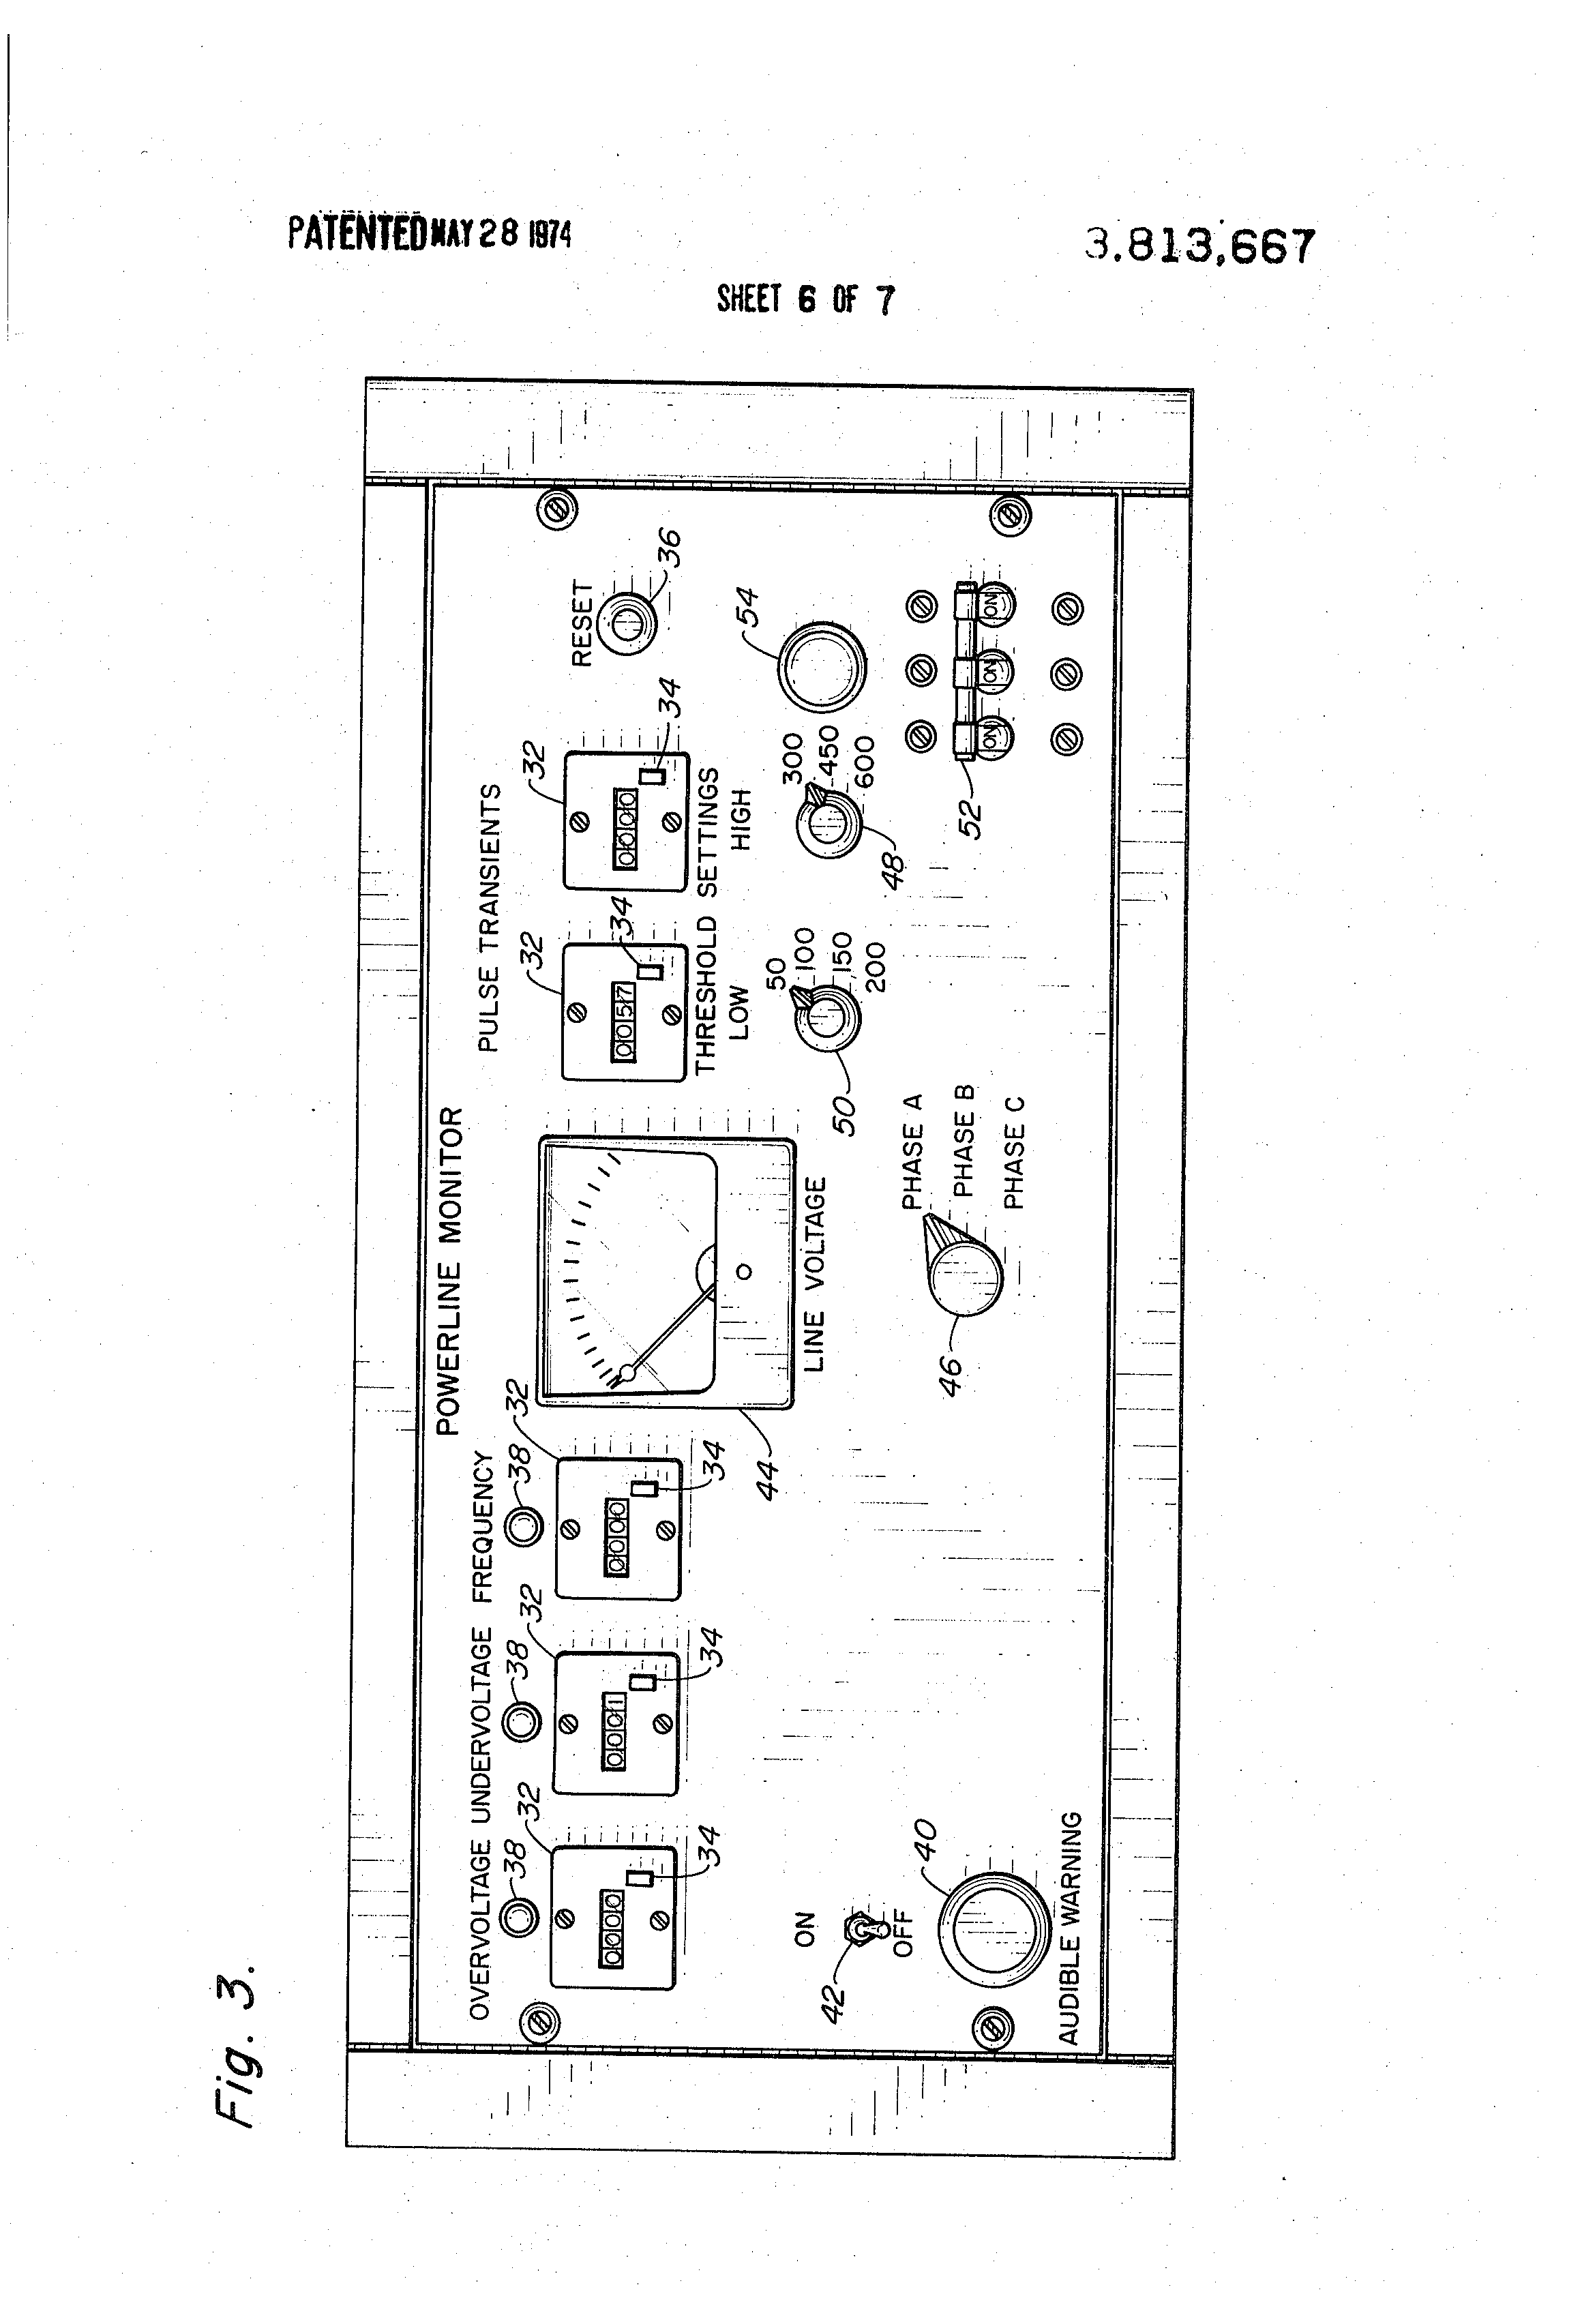 US3813667 6 patent us3813667 three phase power disturbance monitor google Hecon Device at eliteediting.co